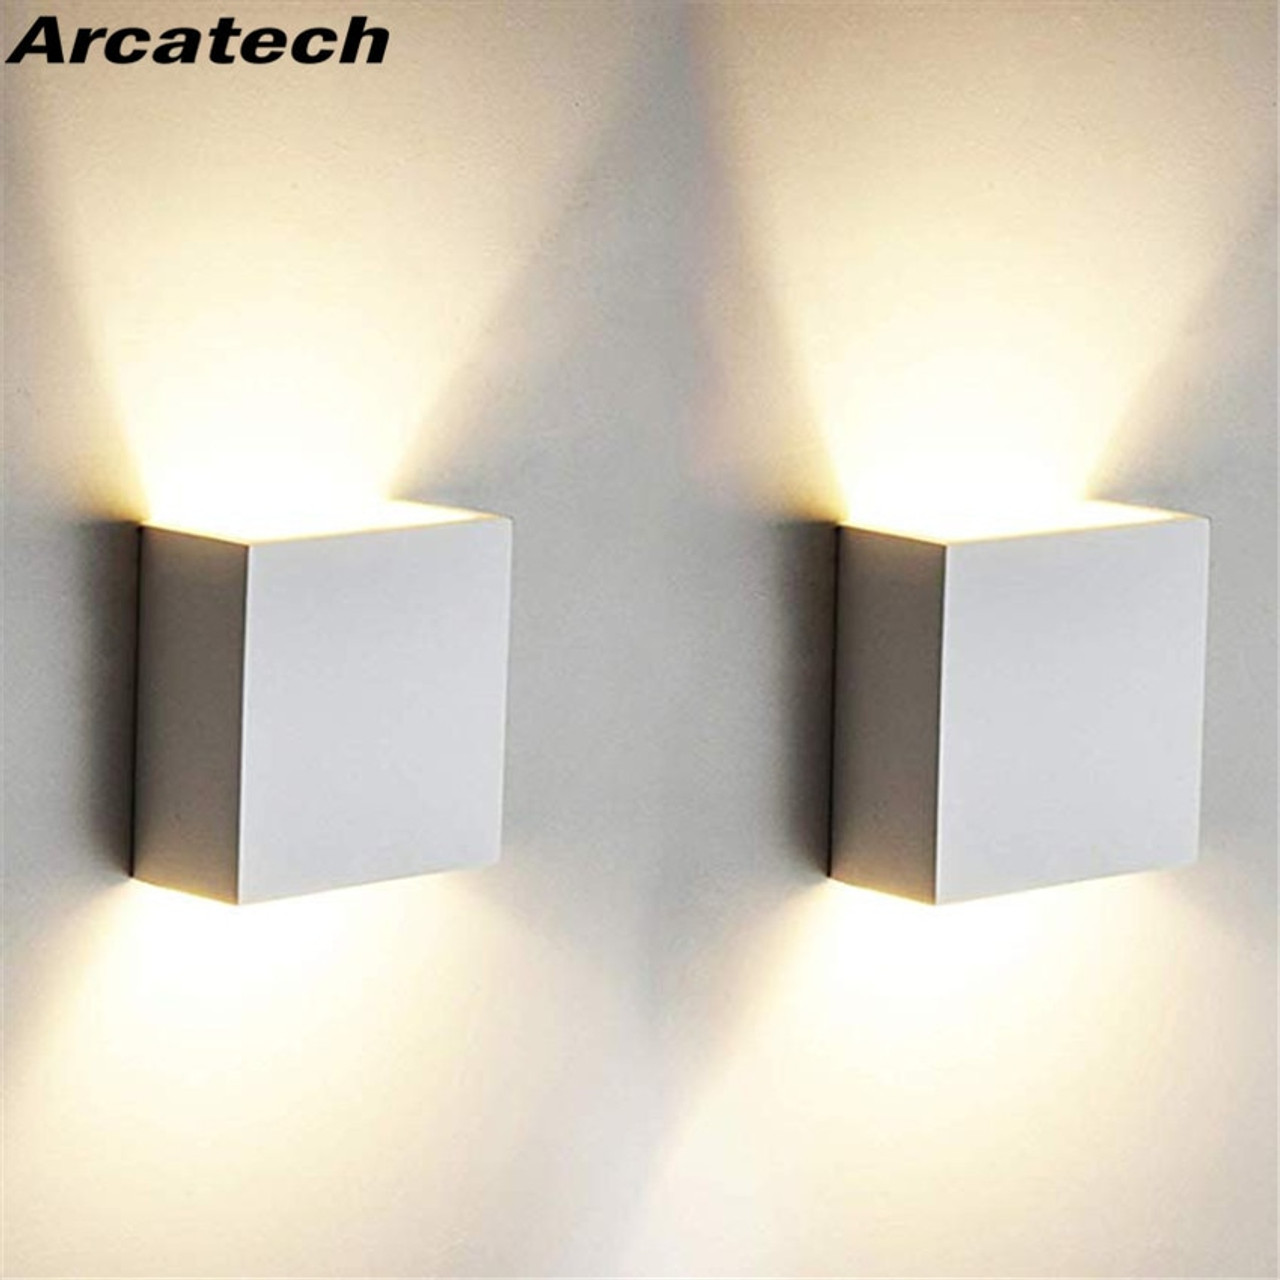 Home Furniture Diy 6w Led Wall Light Up Down Cube Indoor Outdoor Sconce Lights Lamp Fixture Decor Kisetsu System Co Jp